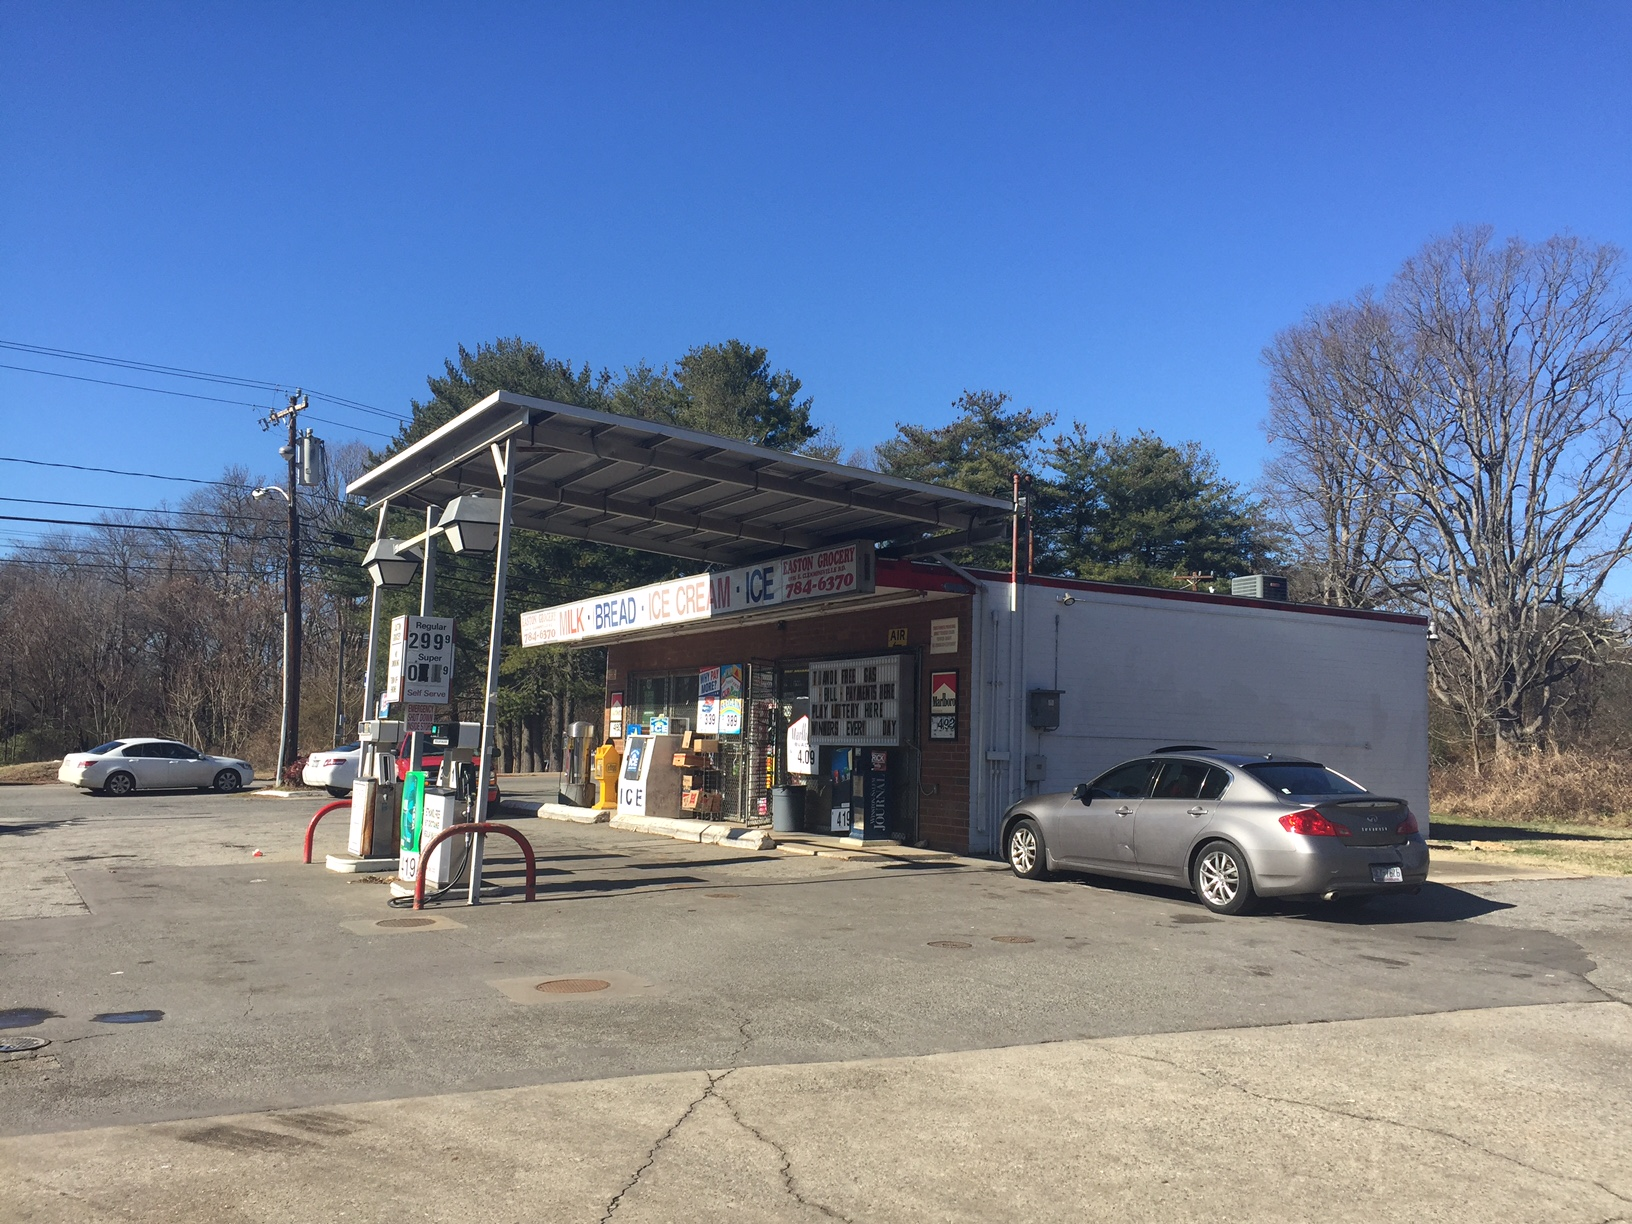 Home for sale: Convenience Store & Land for Development, Winston-Salem, NC